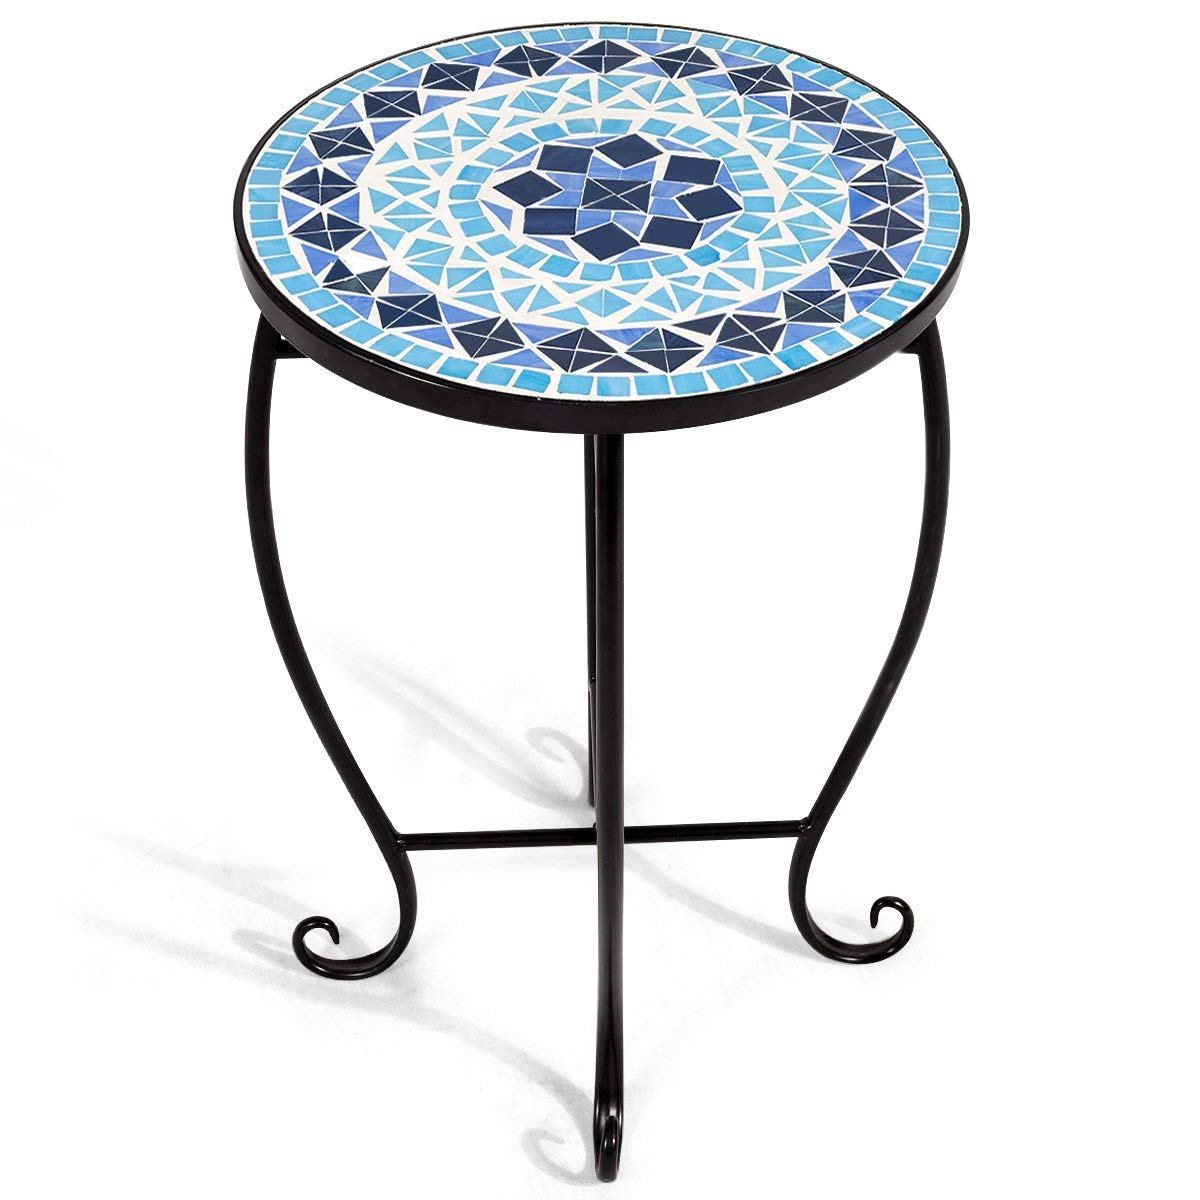 metal plant table find line blue round accent get quotations giantex mosaic side patio stand porch beach theme balcony back deck pool outdoor top large wall clock small winsome